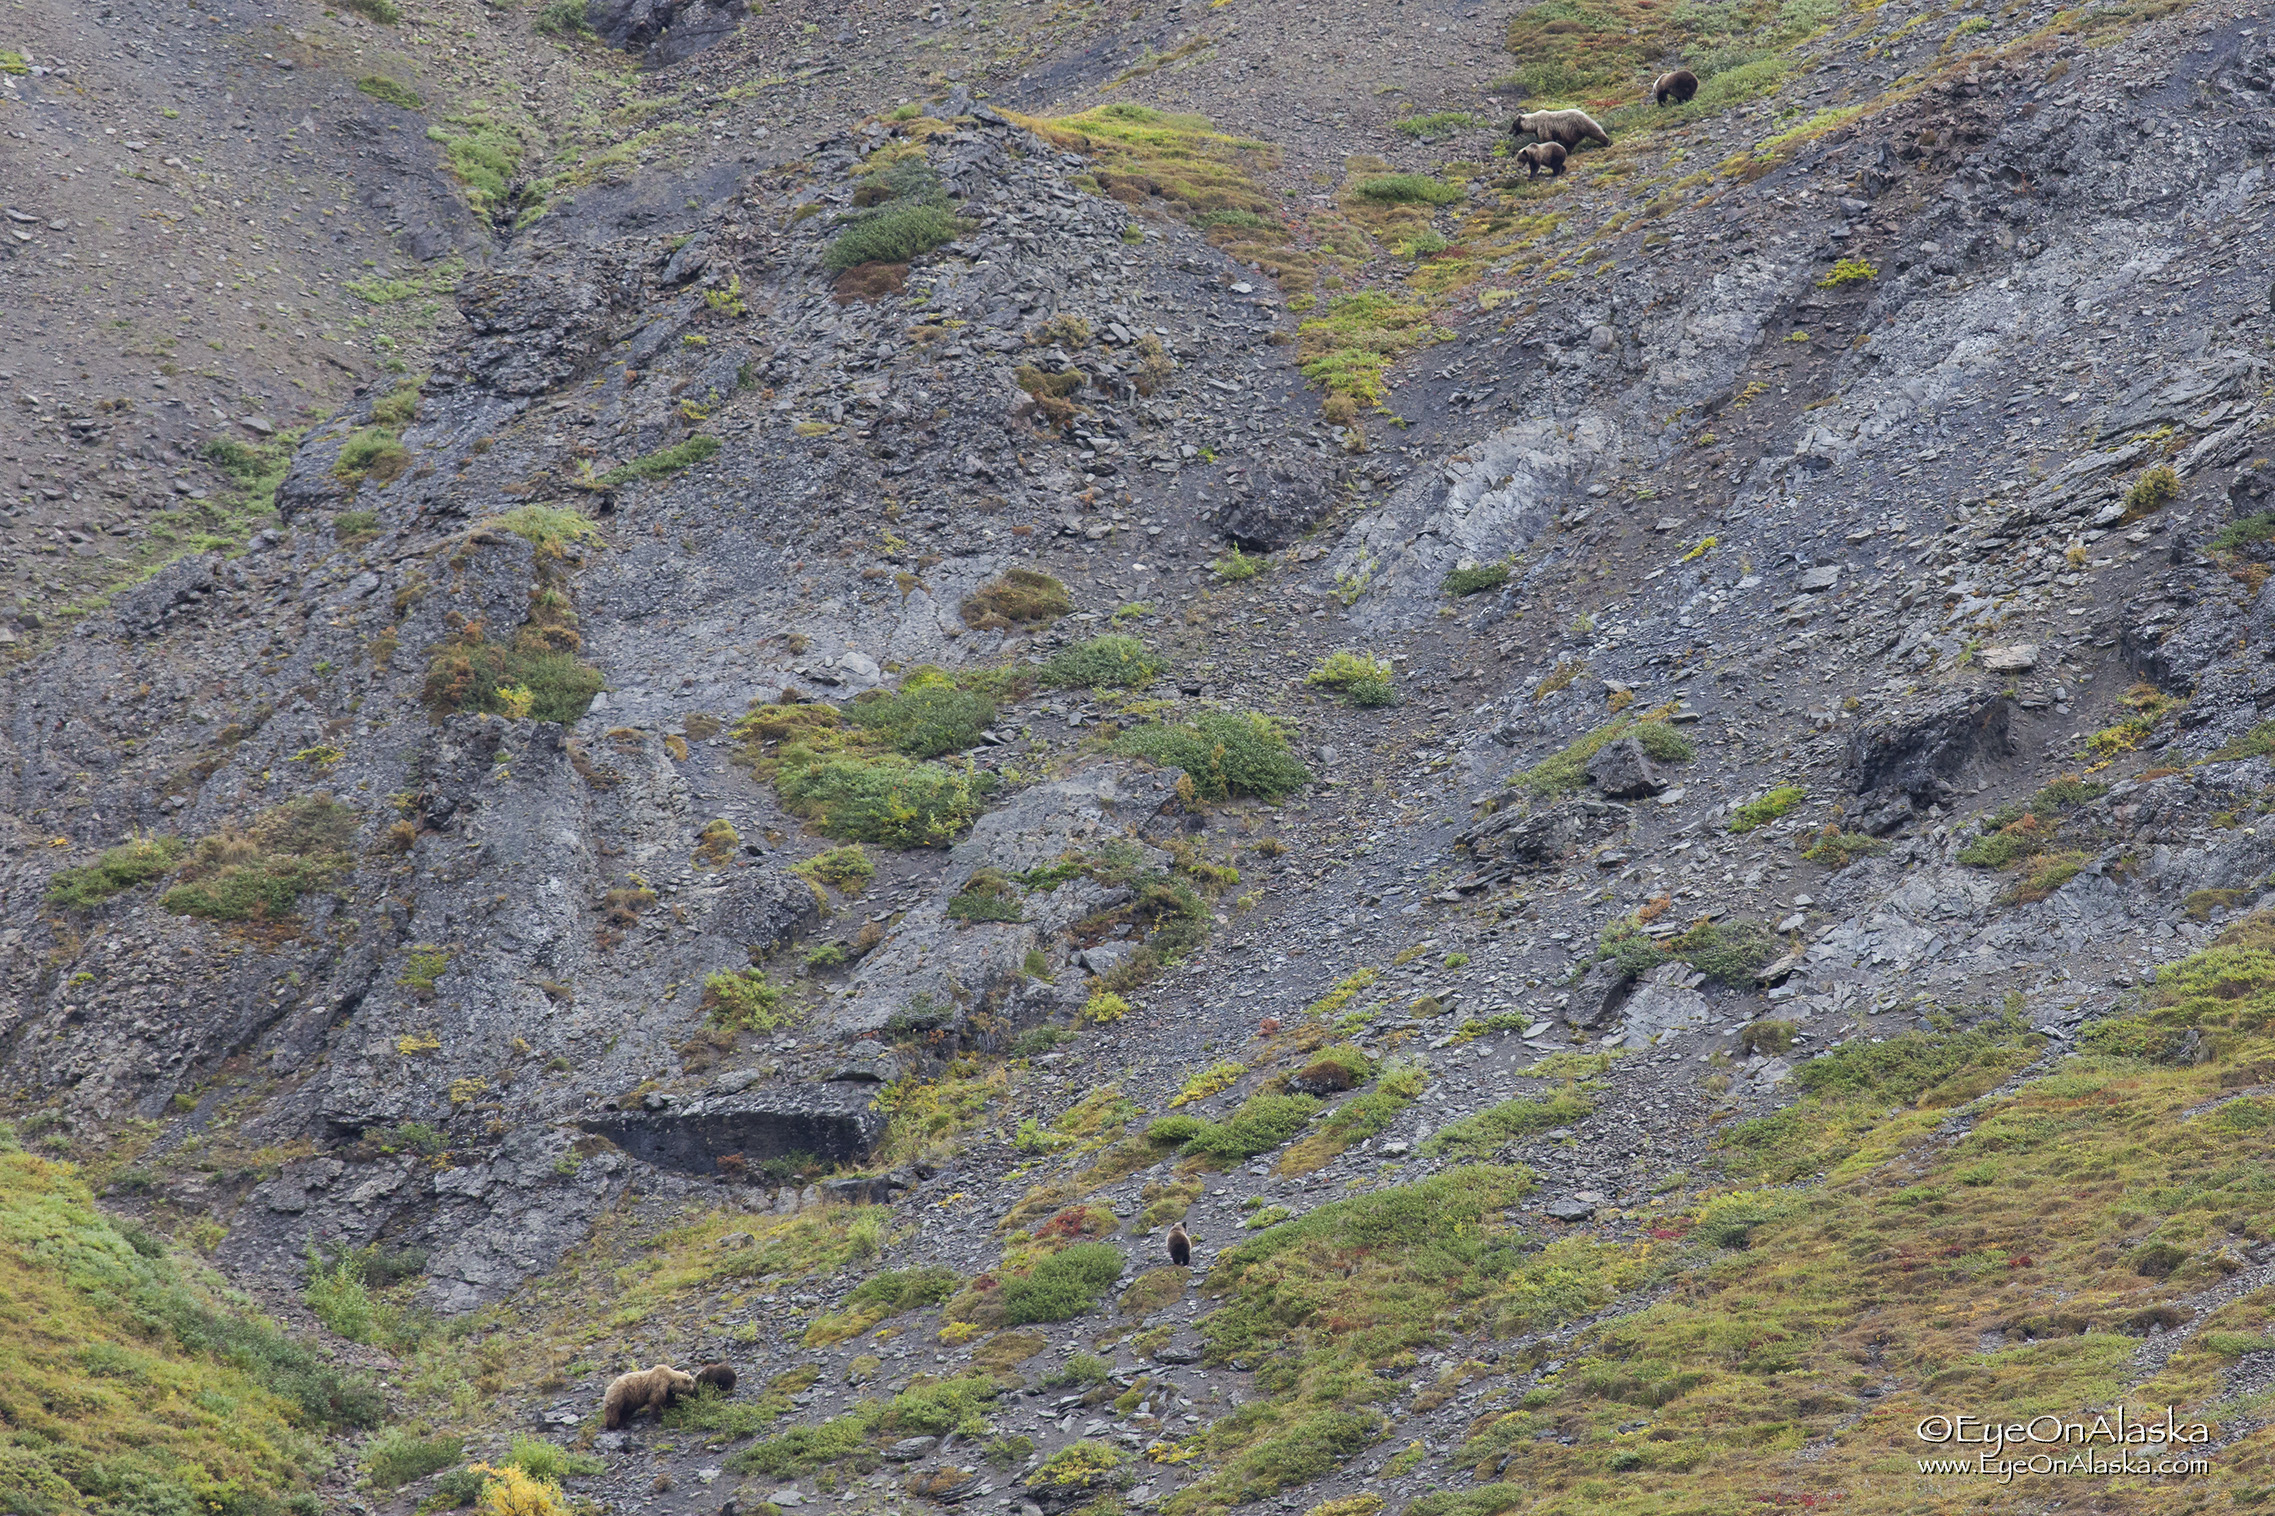 in all the times I've been to Denali, I've never seen six bears in the same picture.  Luckily, they saw each other and avoided any contact or confrontation.